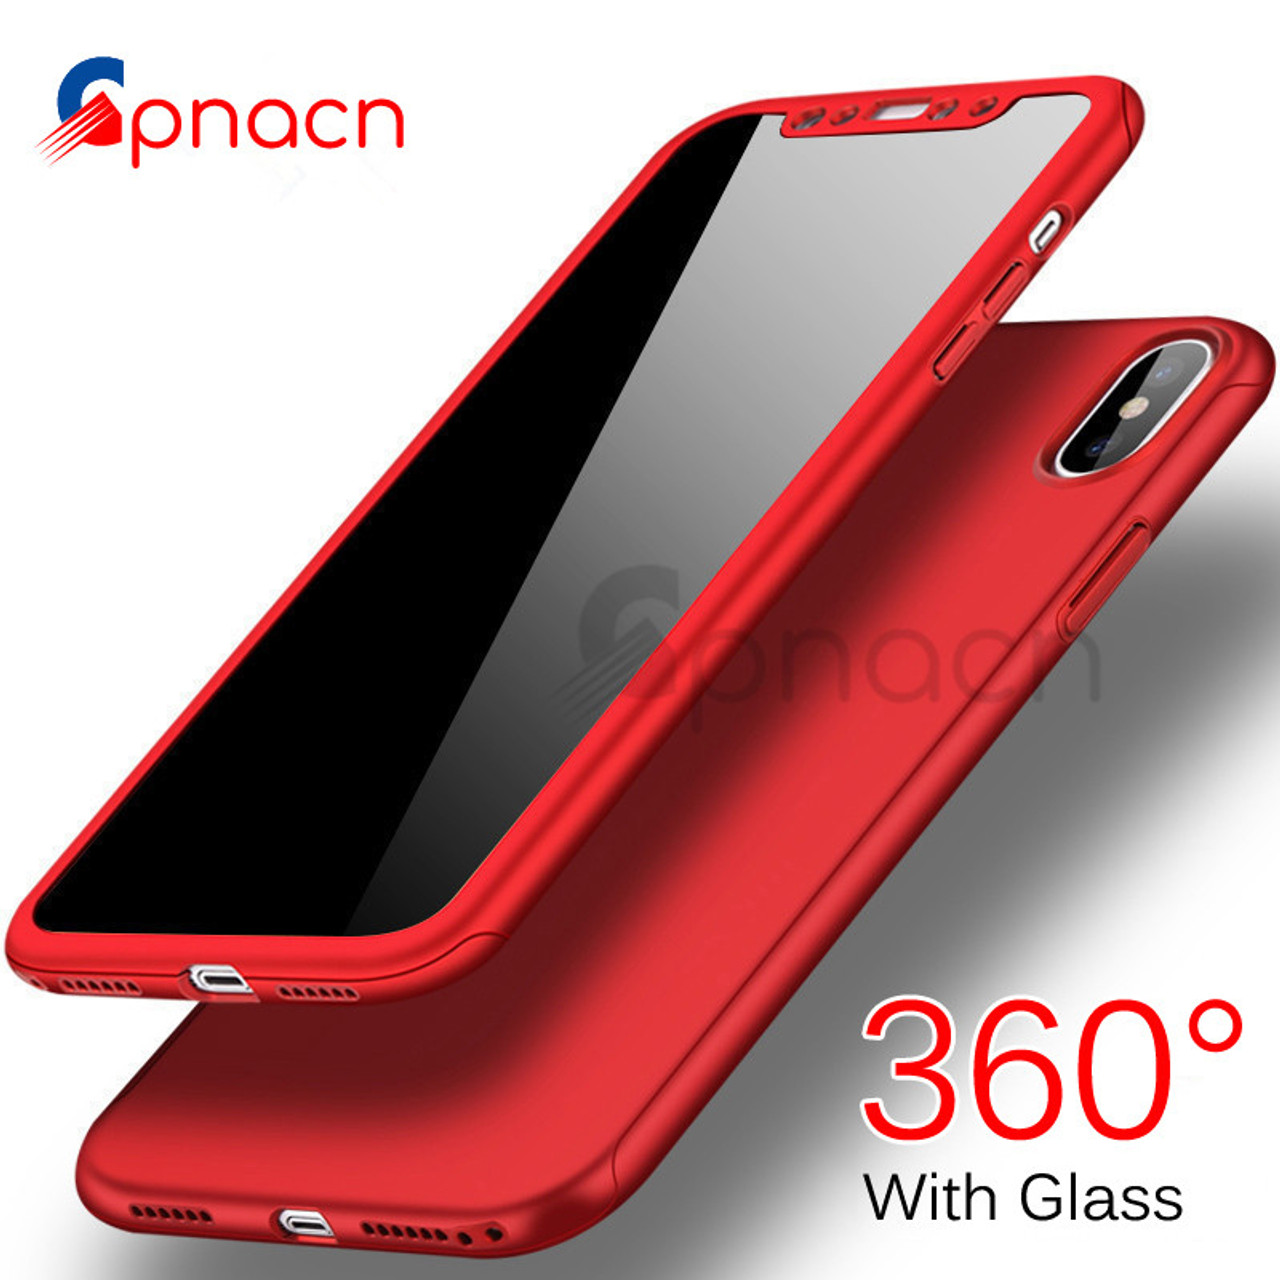 promo code 3ecd6 2053d GPNACN 360 Degree Full Cover Cases For iPhone X 6 6s 7 8 Case wish Tempered  Glass Cover For iphone 6 6S8 7 Plus Phone Case Capa